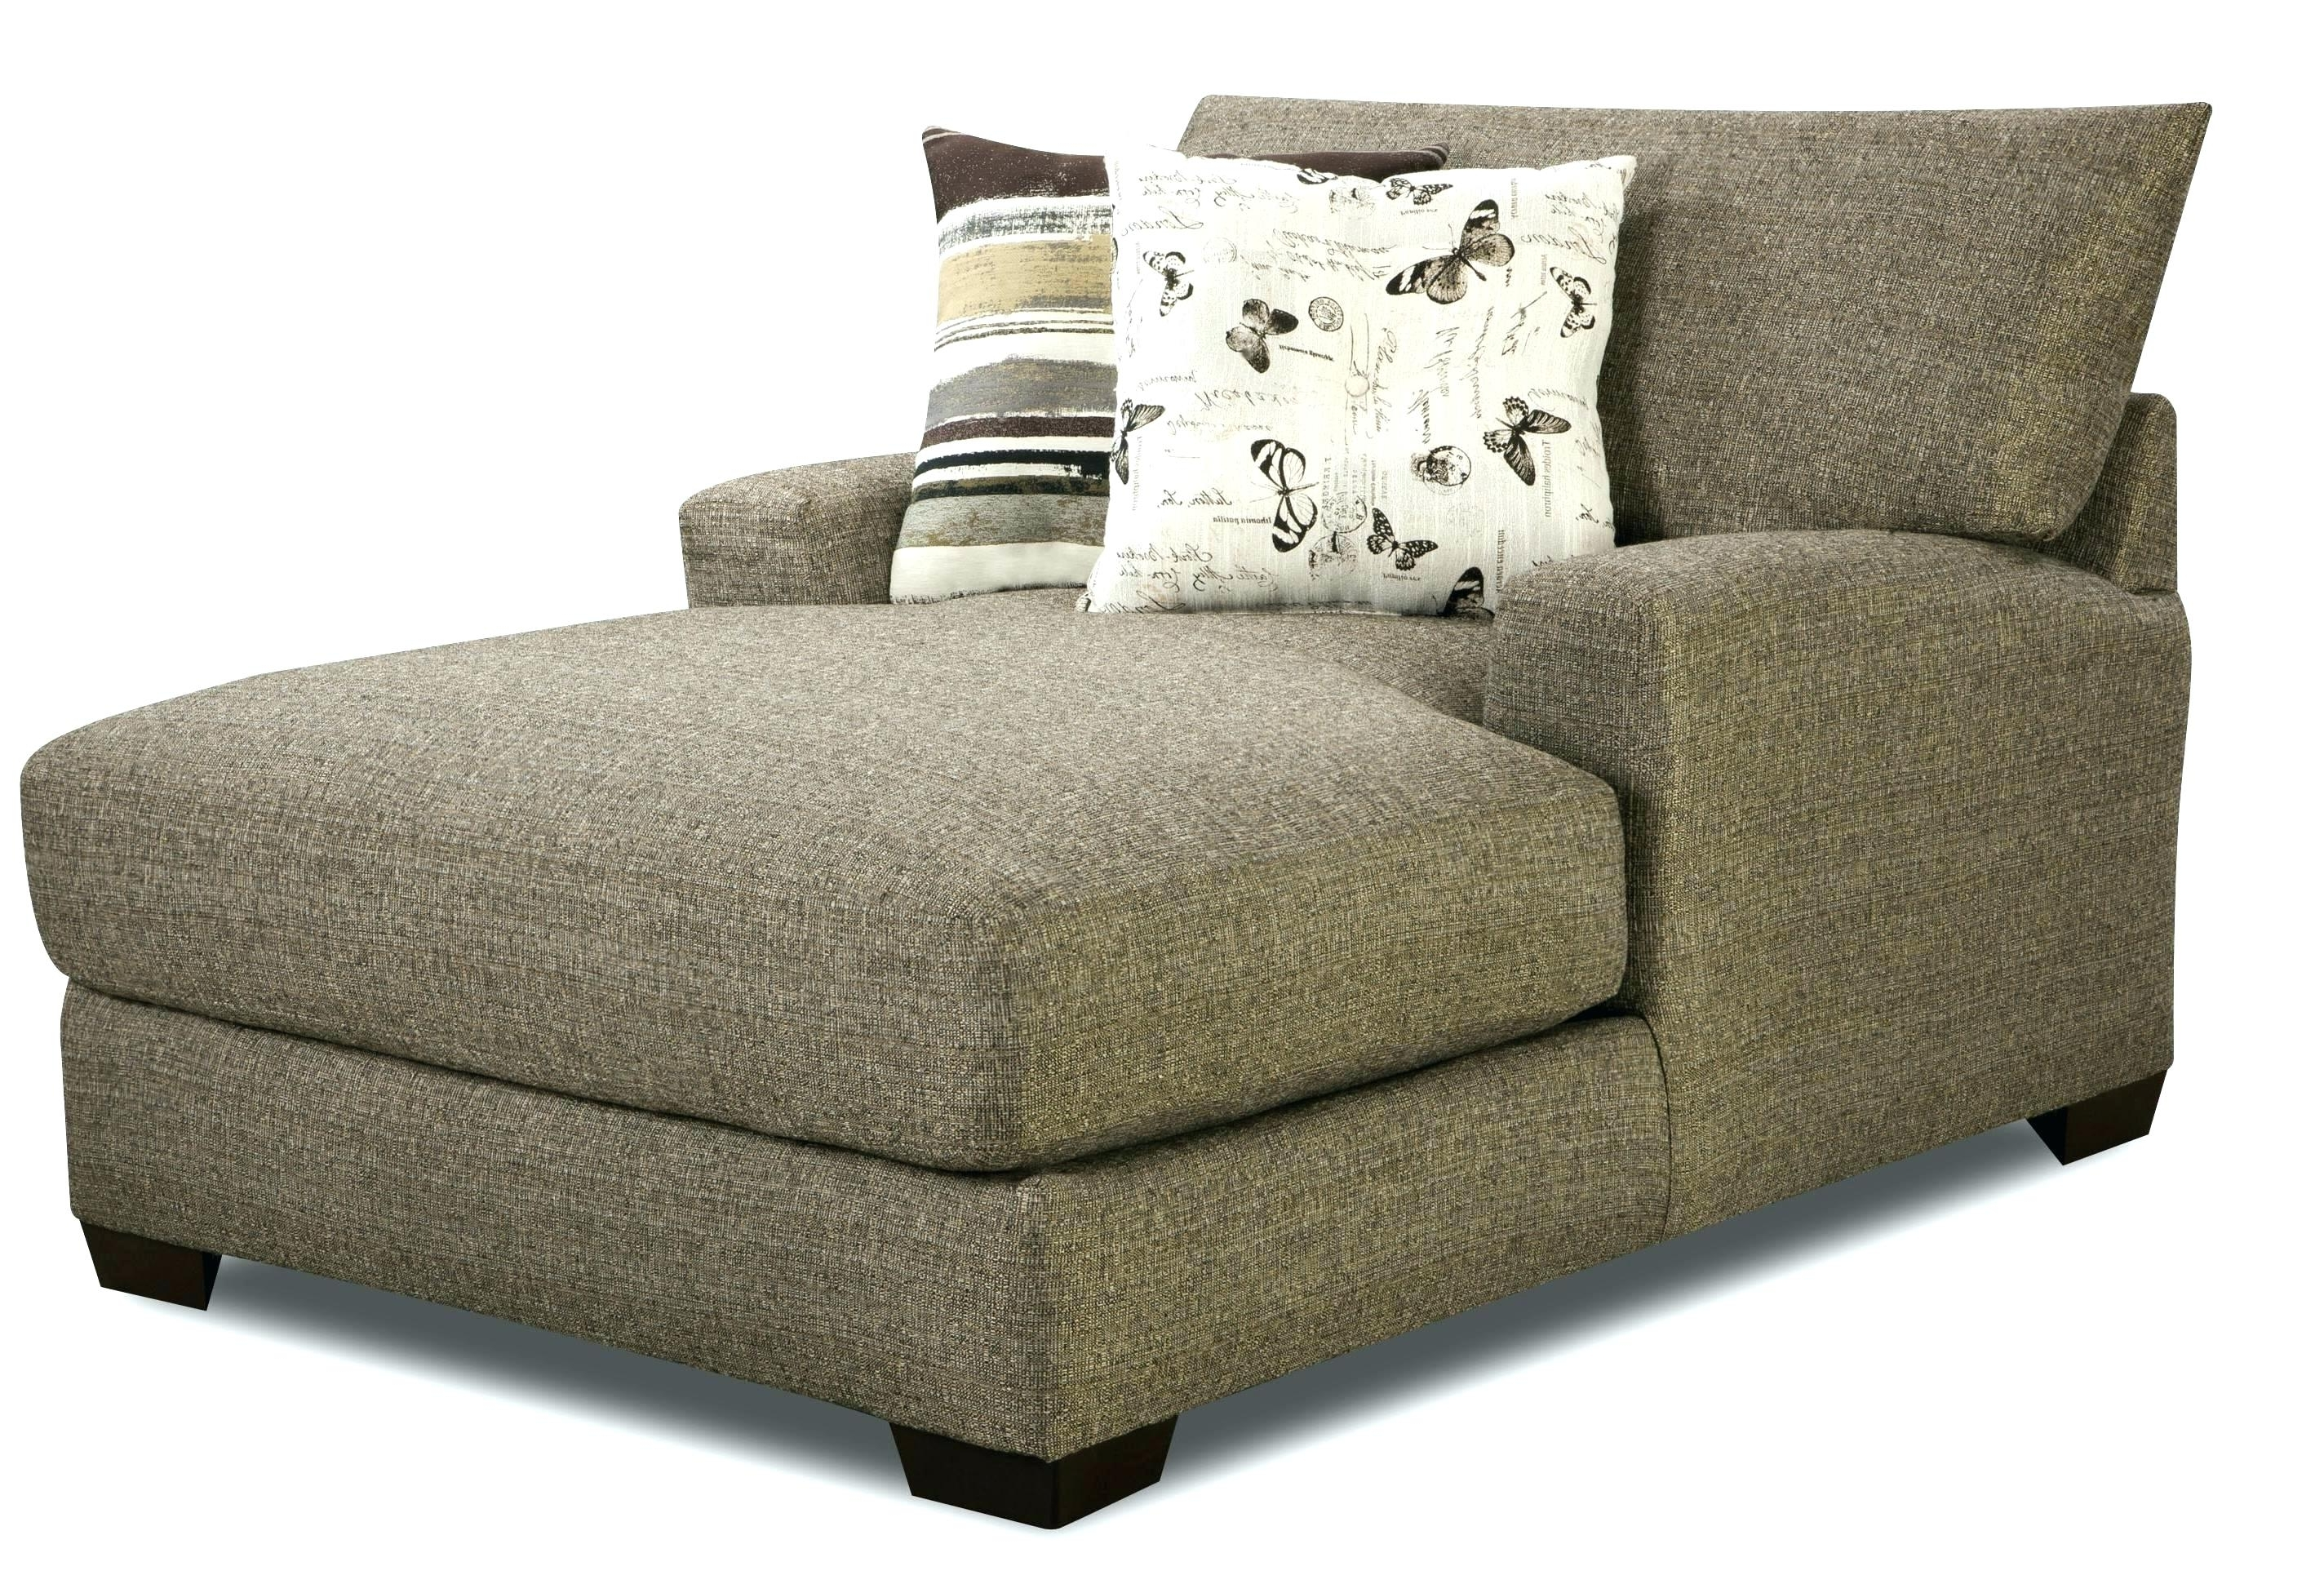 Latest Chaise Recliner Chairs With Regard To Chairs: Narrow Reclining Chairs. Narrow Recliner Chairs Uk (View 4 of 15)